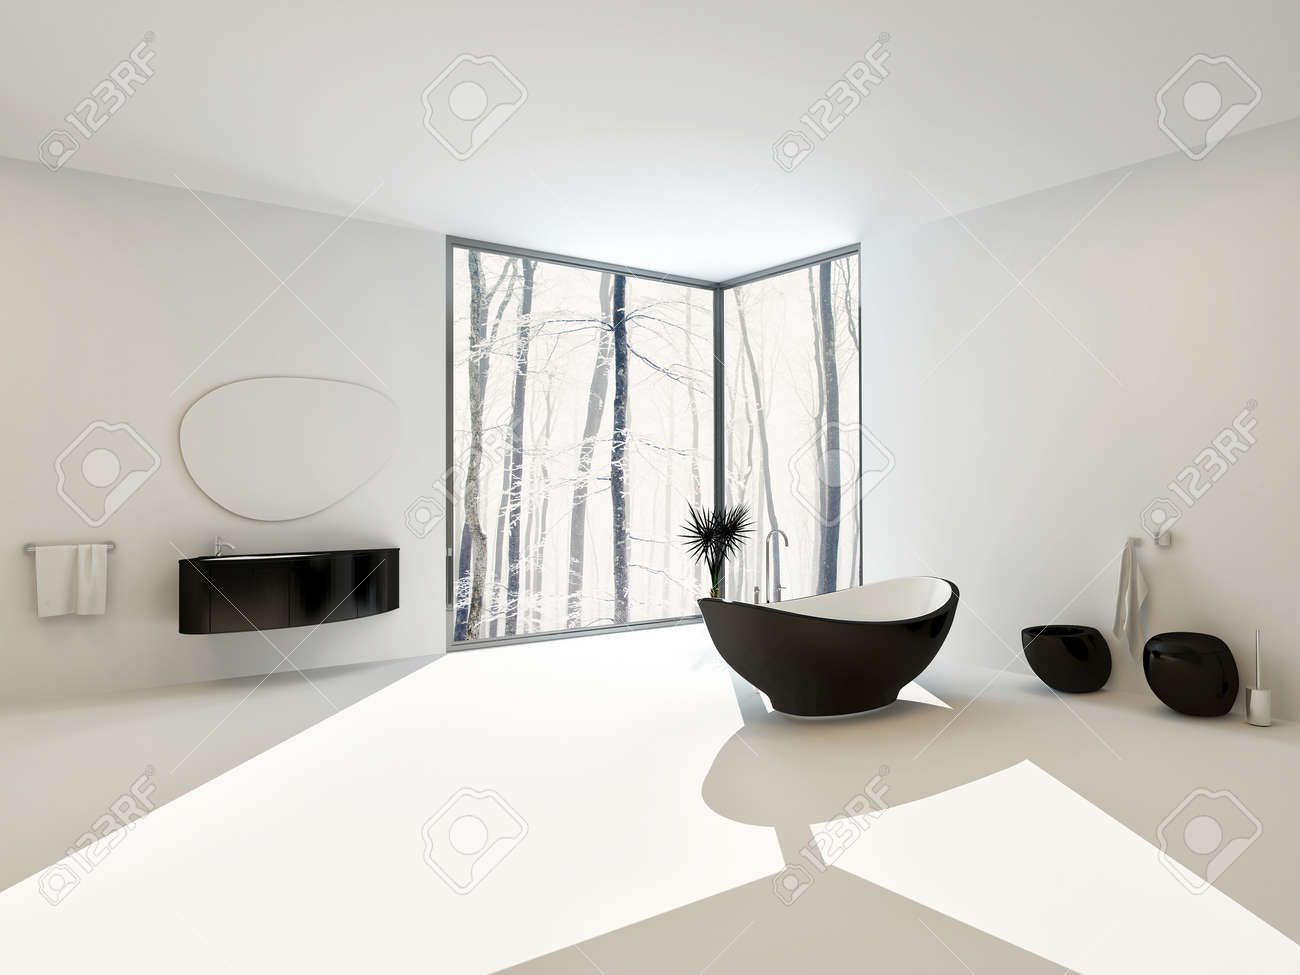 spacious all white bathroom. Luxury Spacious Airy Bright White Modern Bathroom Interior With Black Boat-shaped Bathtub And Matching All C